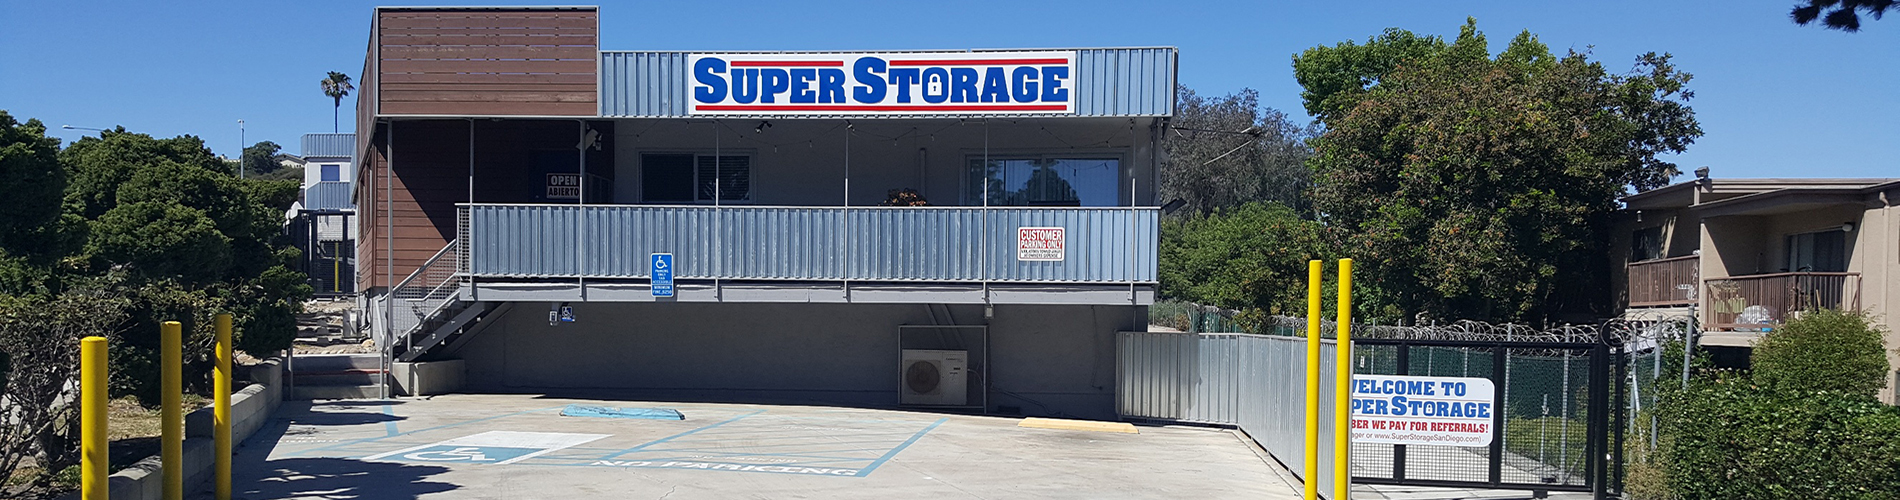 SuperStorage San Diego  | Self Storage in San Diego, CA 92105  - Rent your self storage today